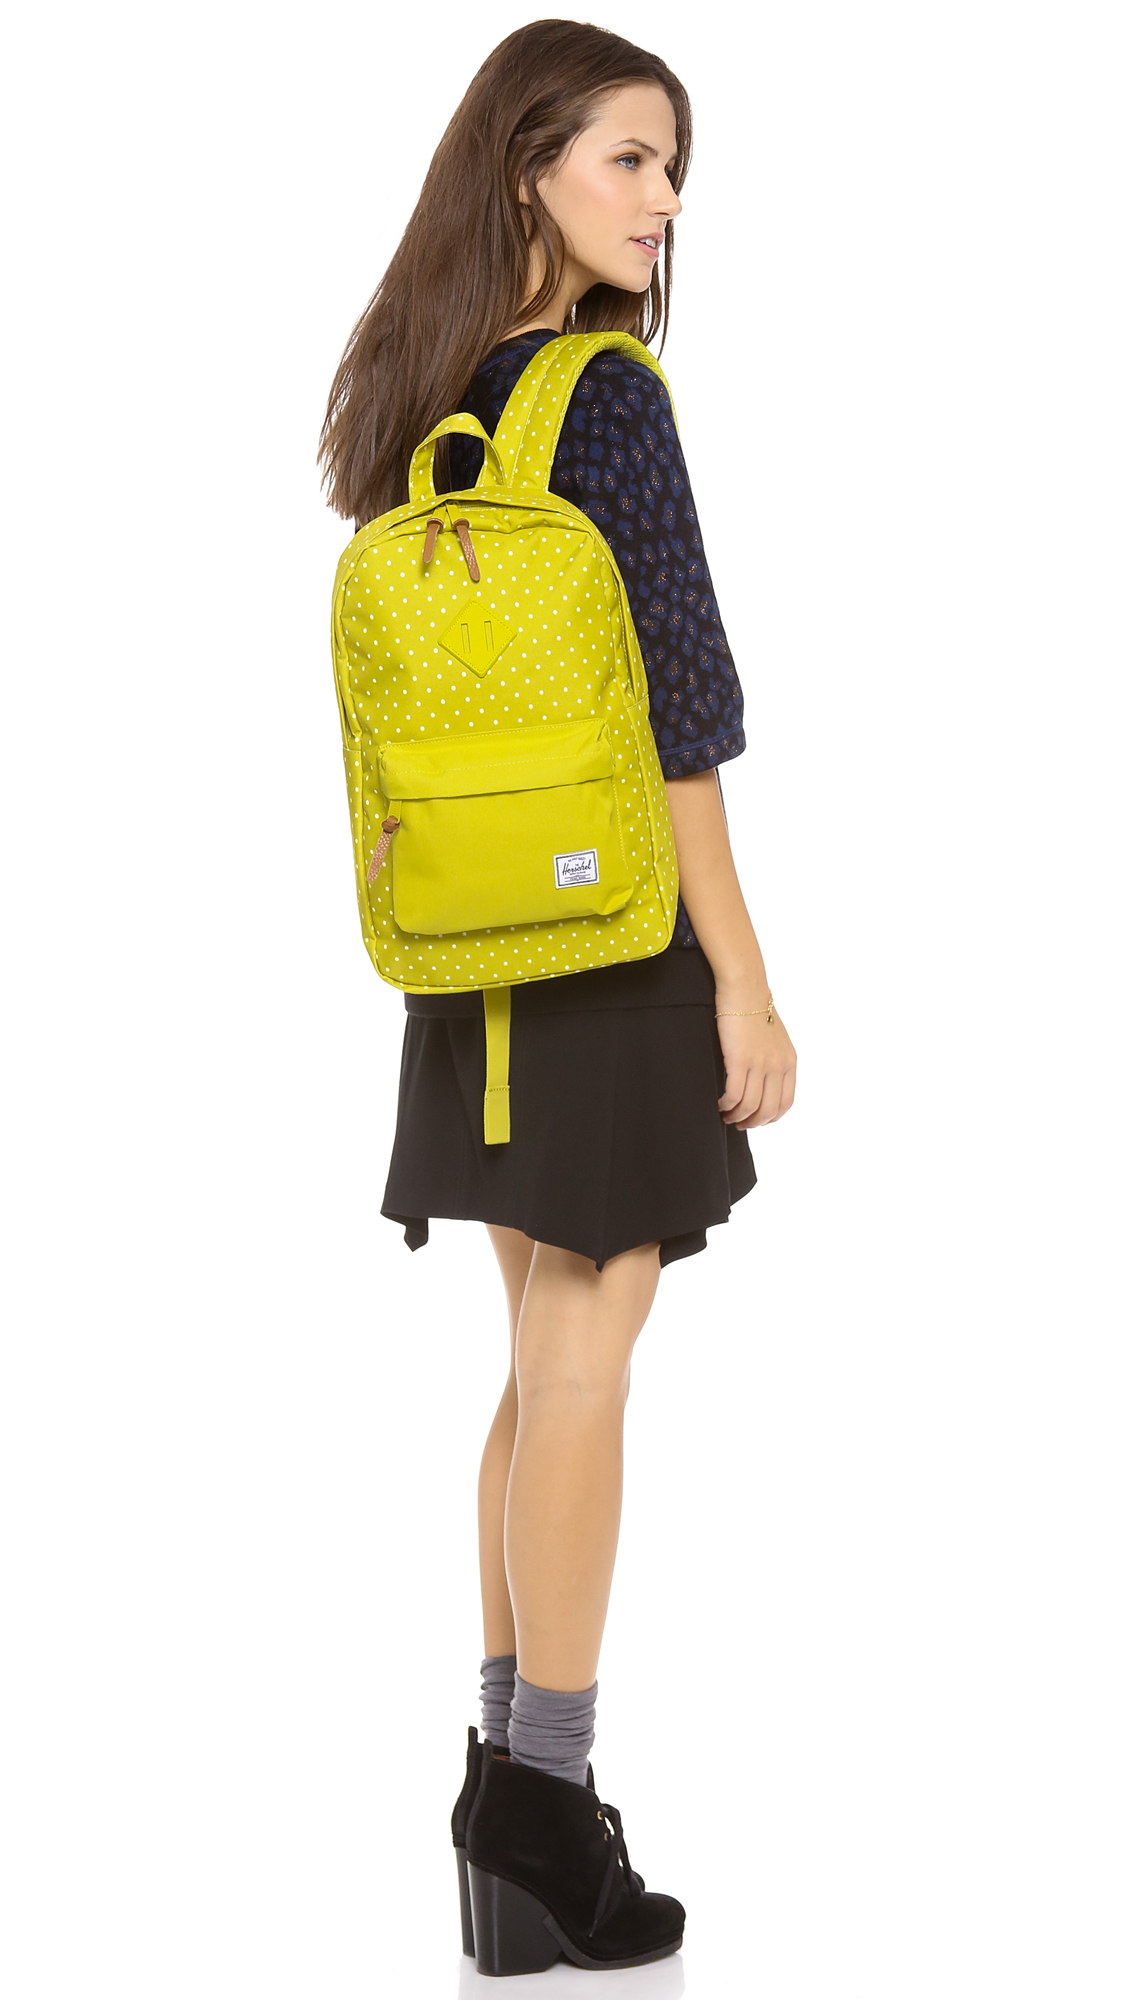 Lyst - Herschel Supply Co. Heritage Mid Volume Backpack in Yellow b82cbf97605d4